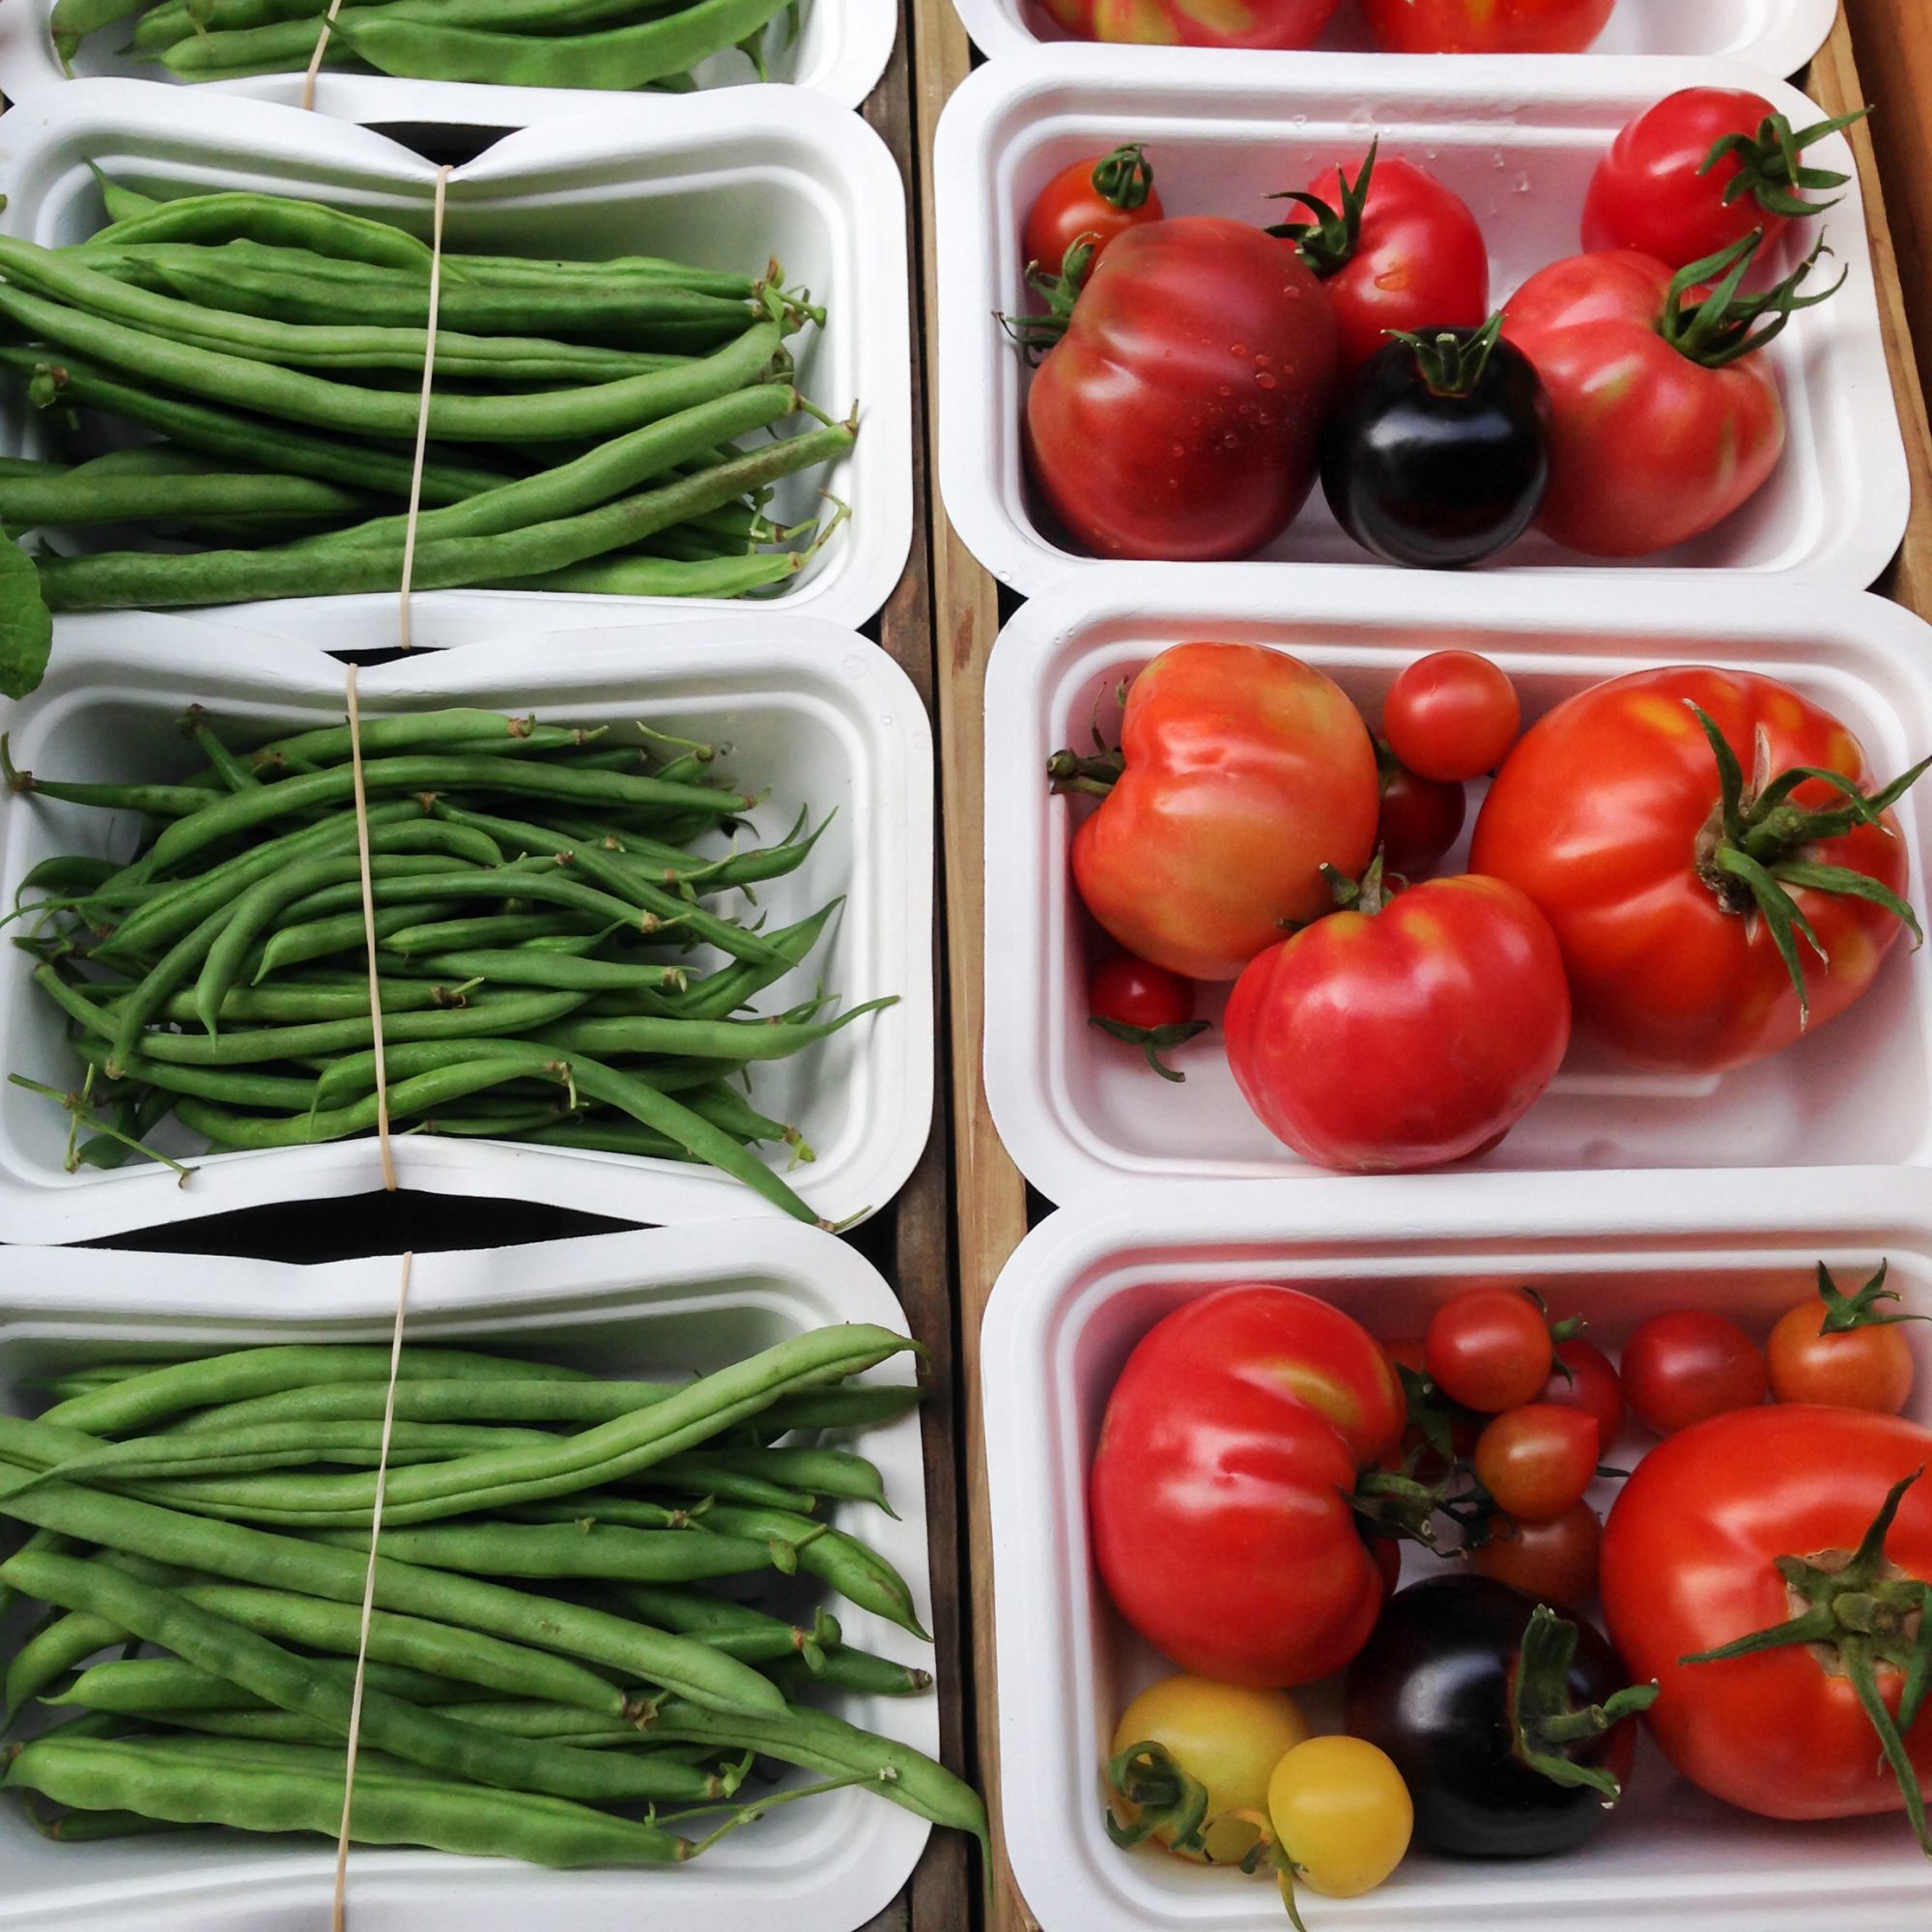 Organic tomatoes and green french beans in compostable packaging made from sugarcane fibre, at a farmers market in New Zealand, NZ